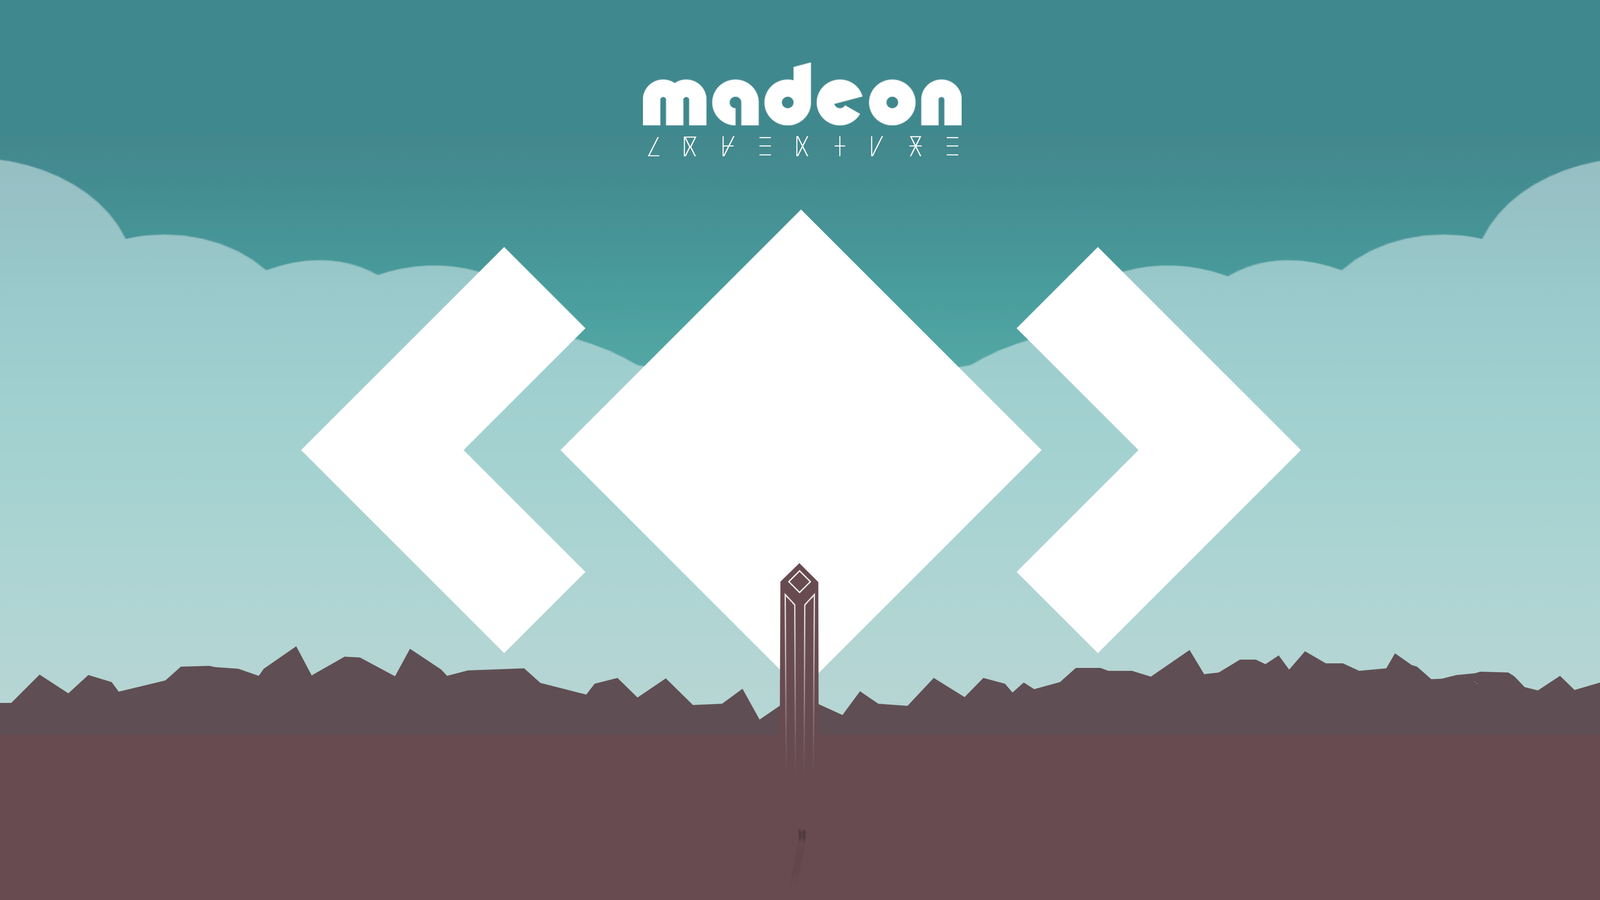 Madeon - Adventure - Wallpaper Minimal by Airscream on ...